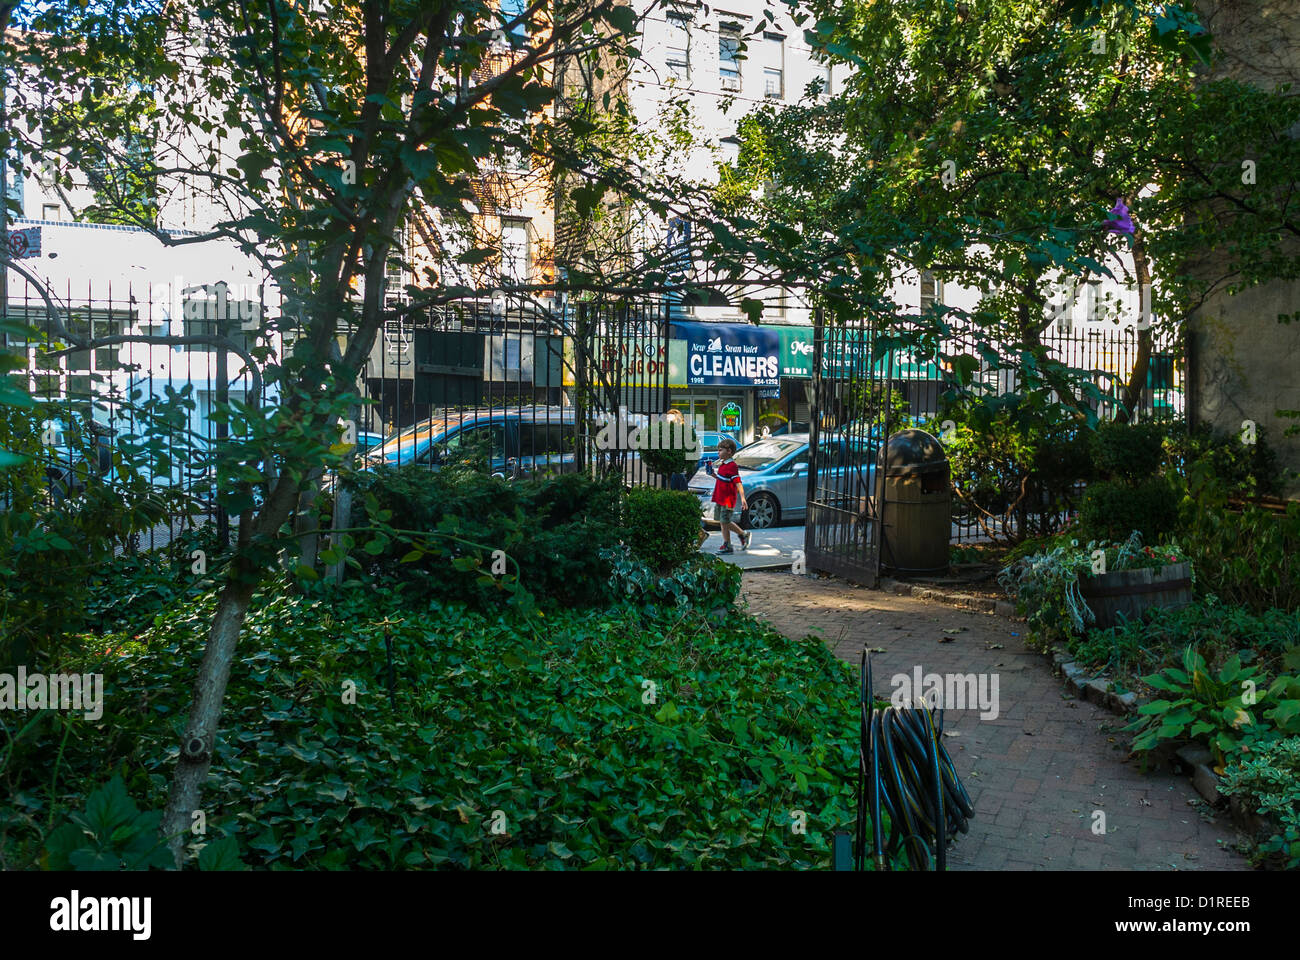 New York East Village Miracle Garden Community Gardens Scenes Stock Photo 52762035 Alamy